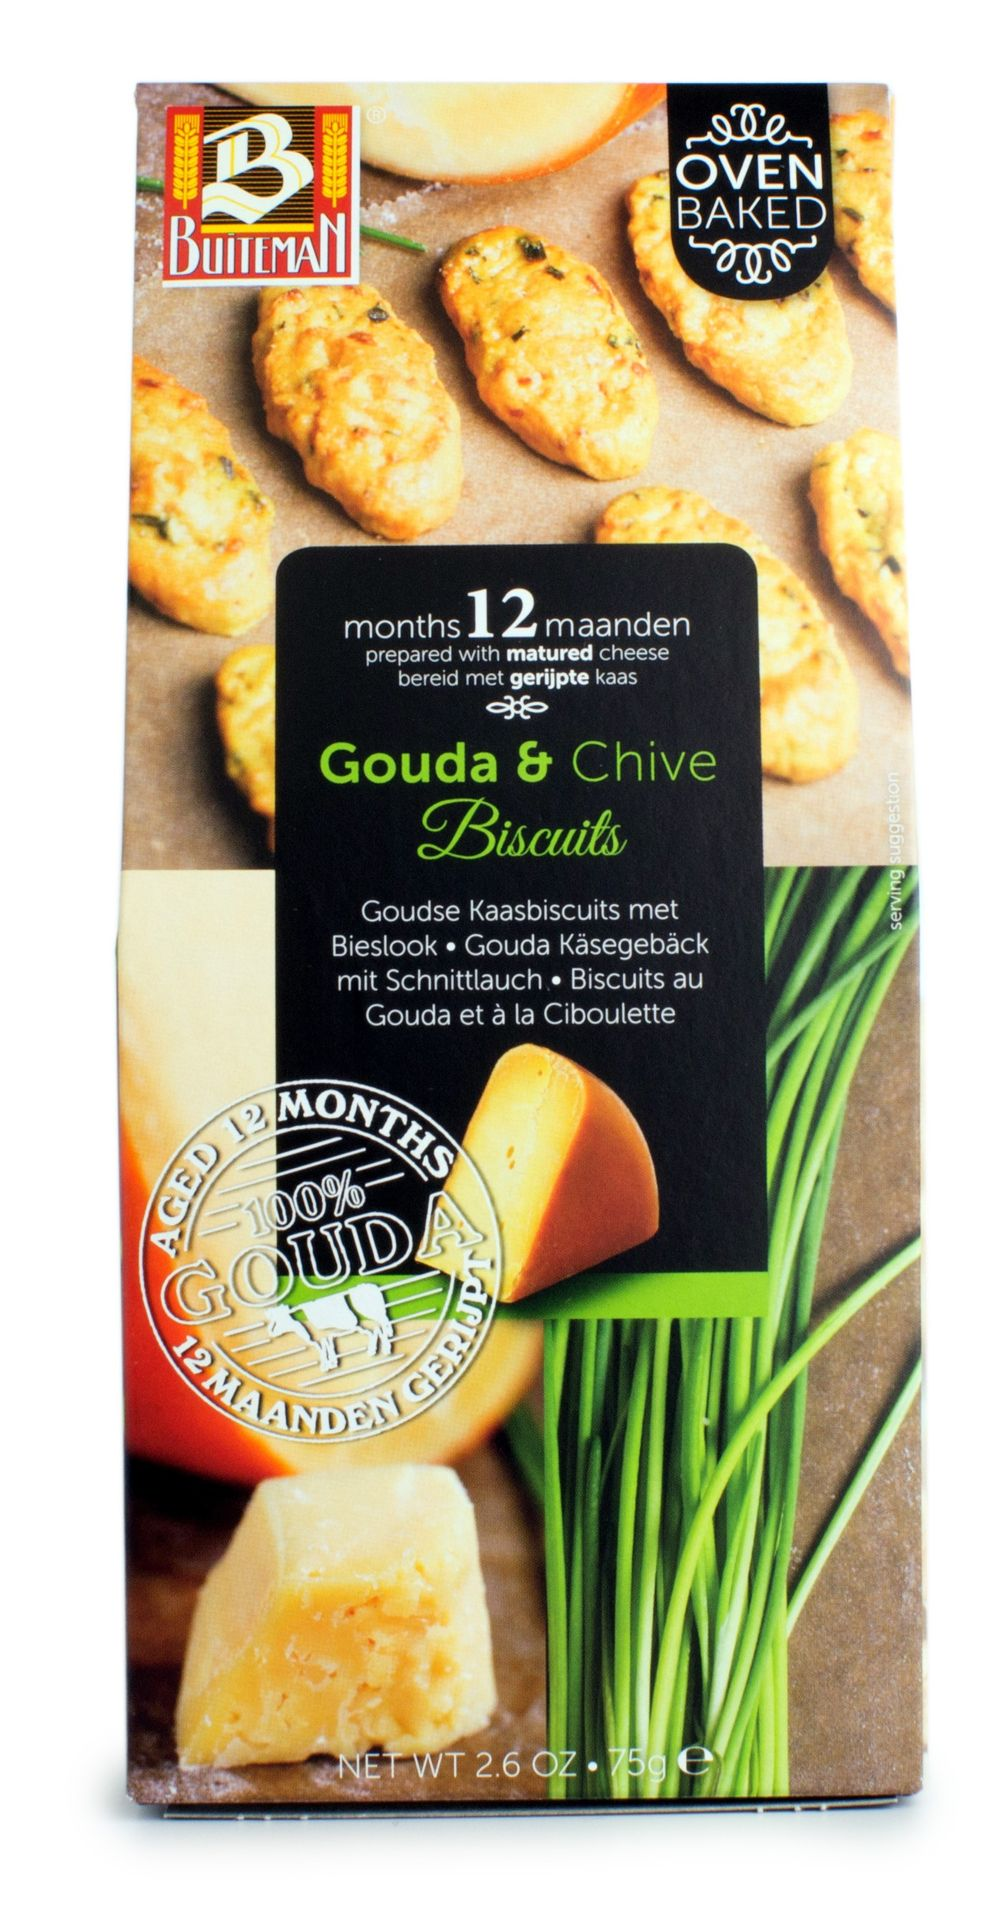 Gouda & Chive Biscuits